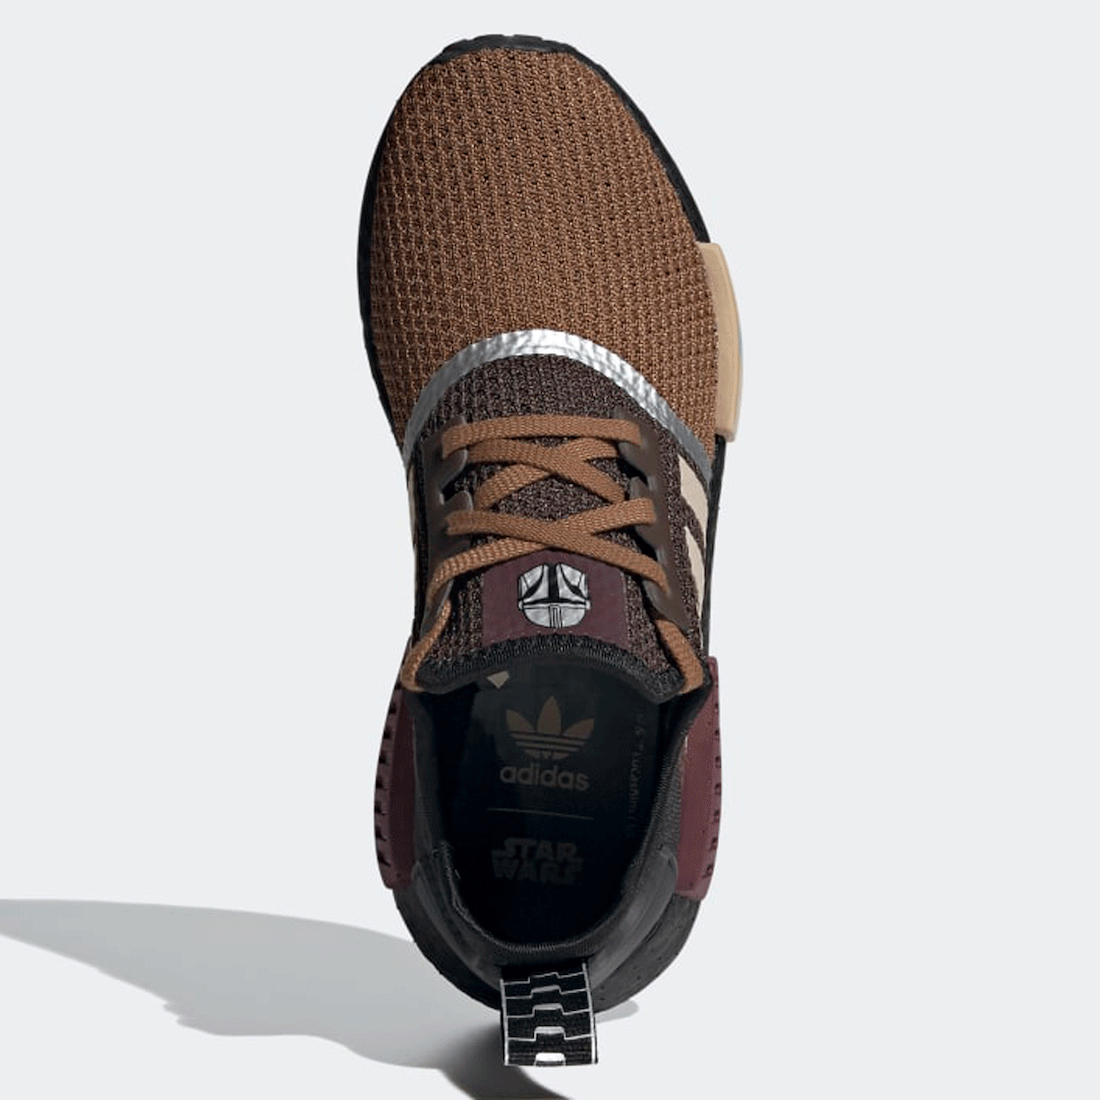 Star Wars adidas NMD R1 The Mandalorian GZ2745 Release Date